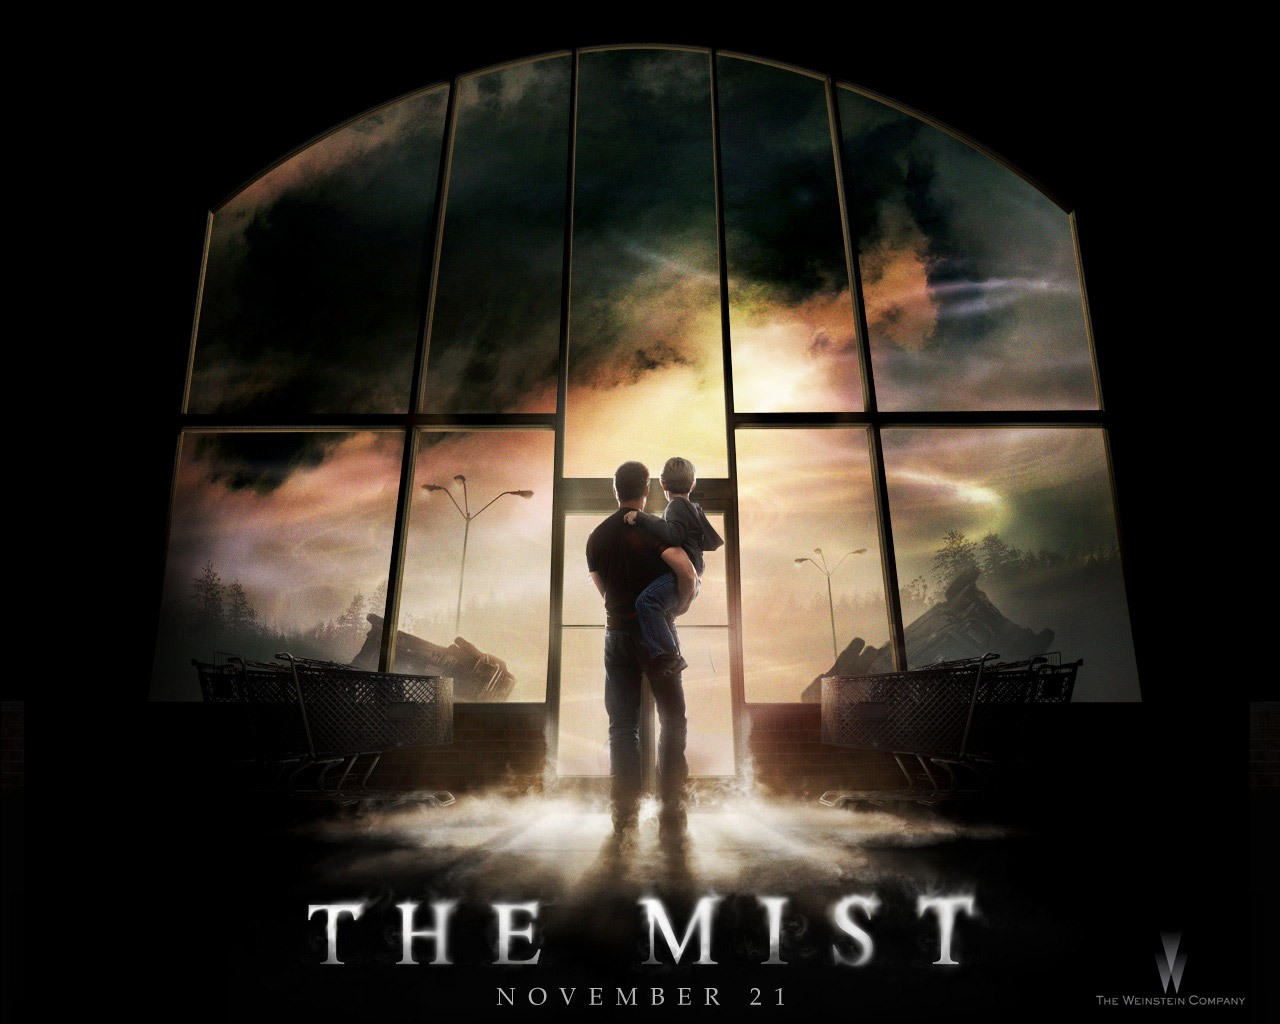 Gary Dobbs at the tainted archive: Halloween Movies - The Mist